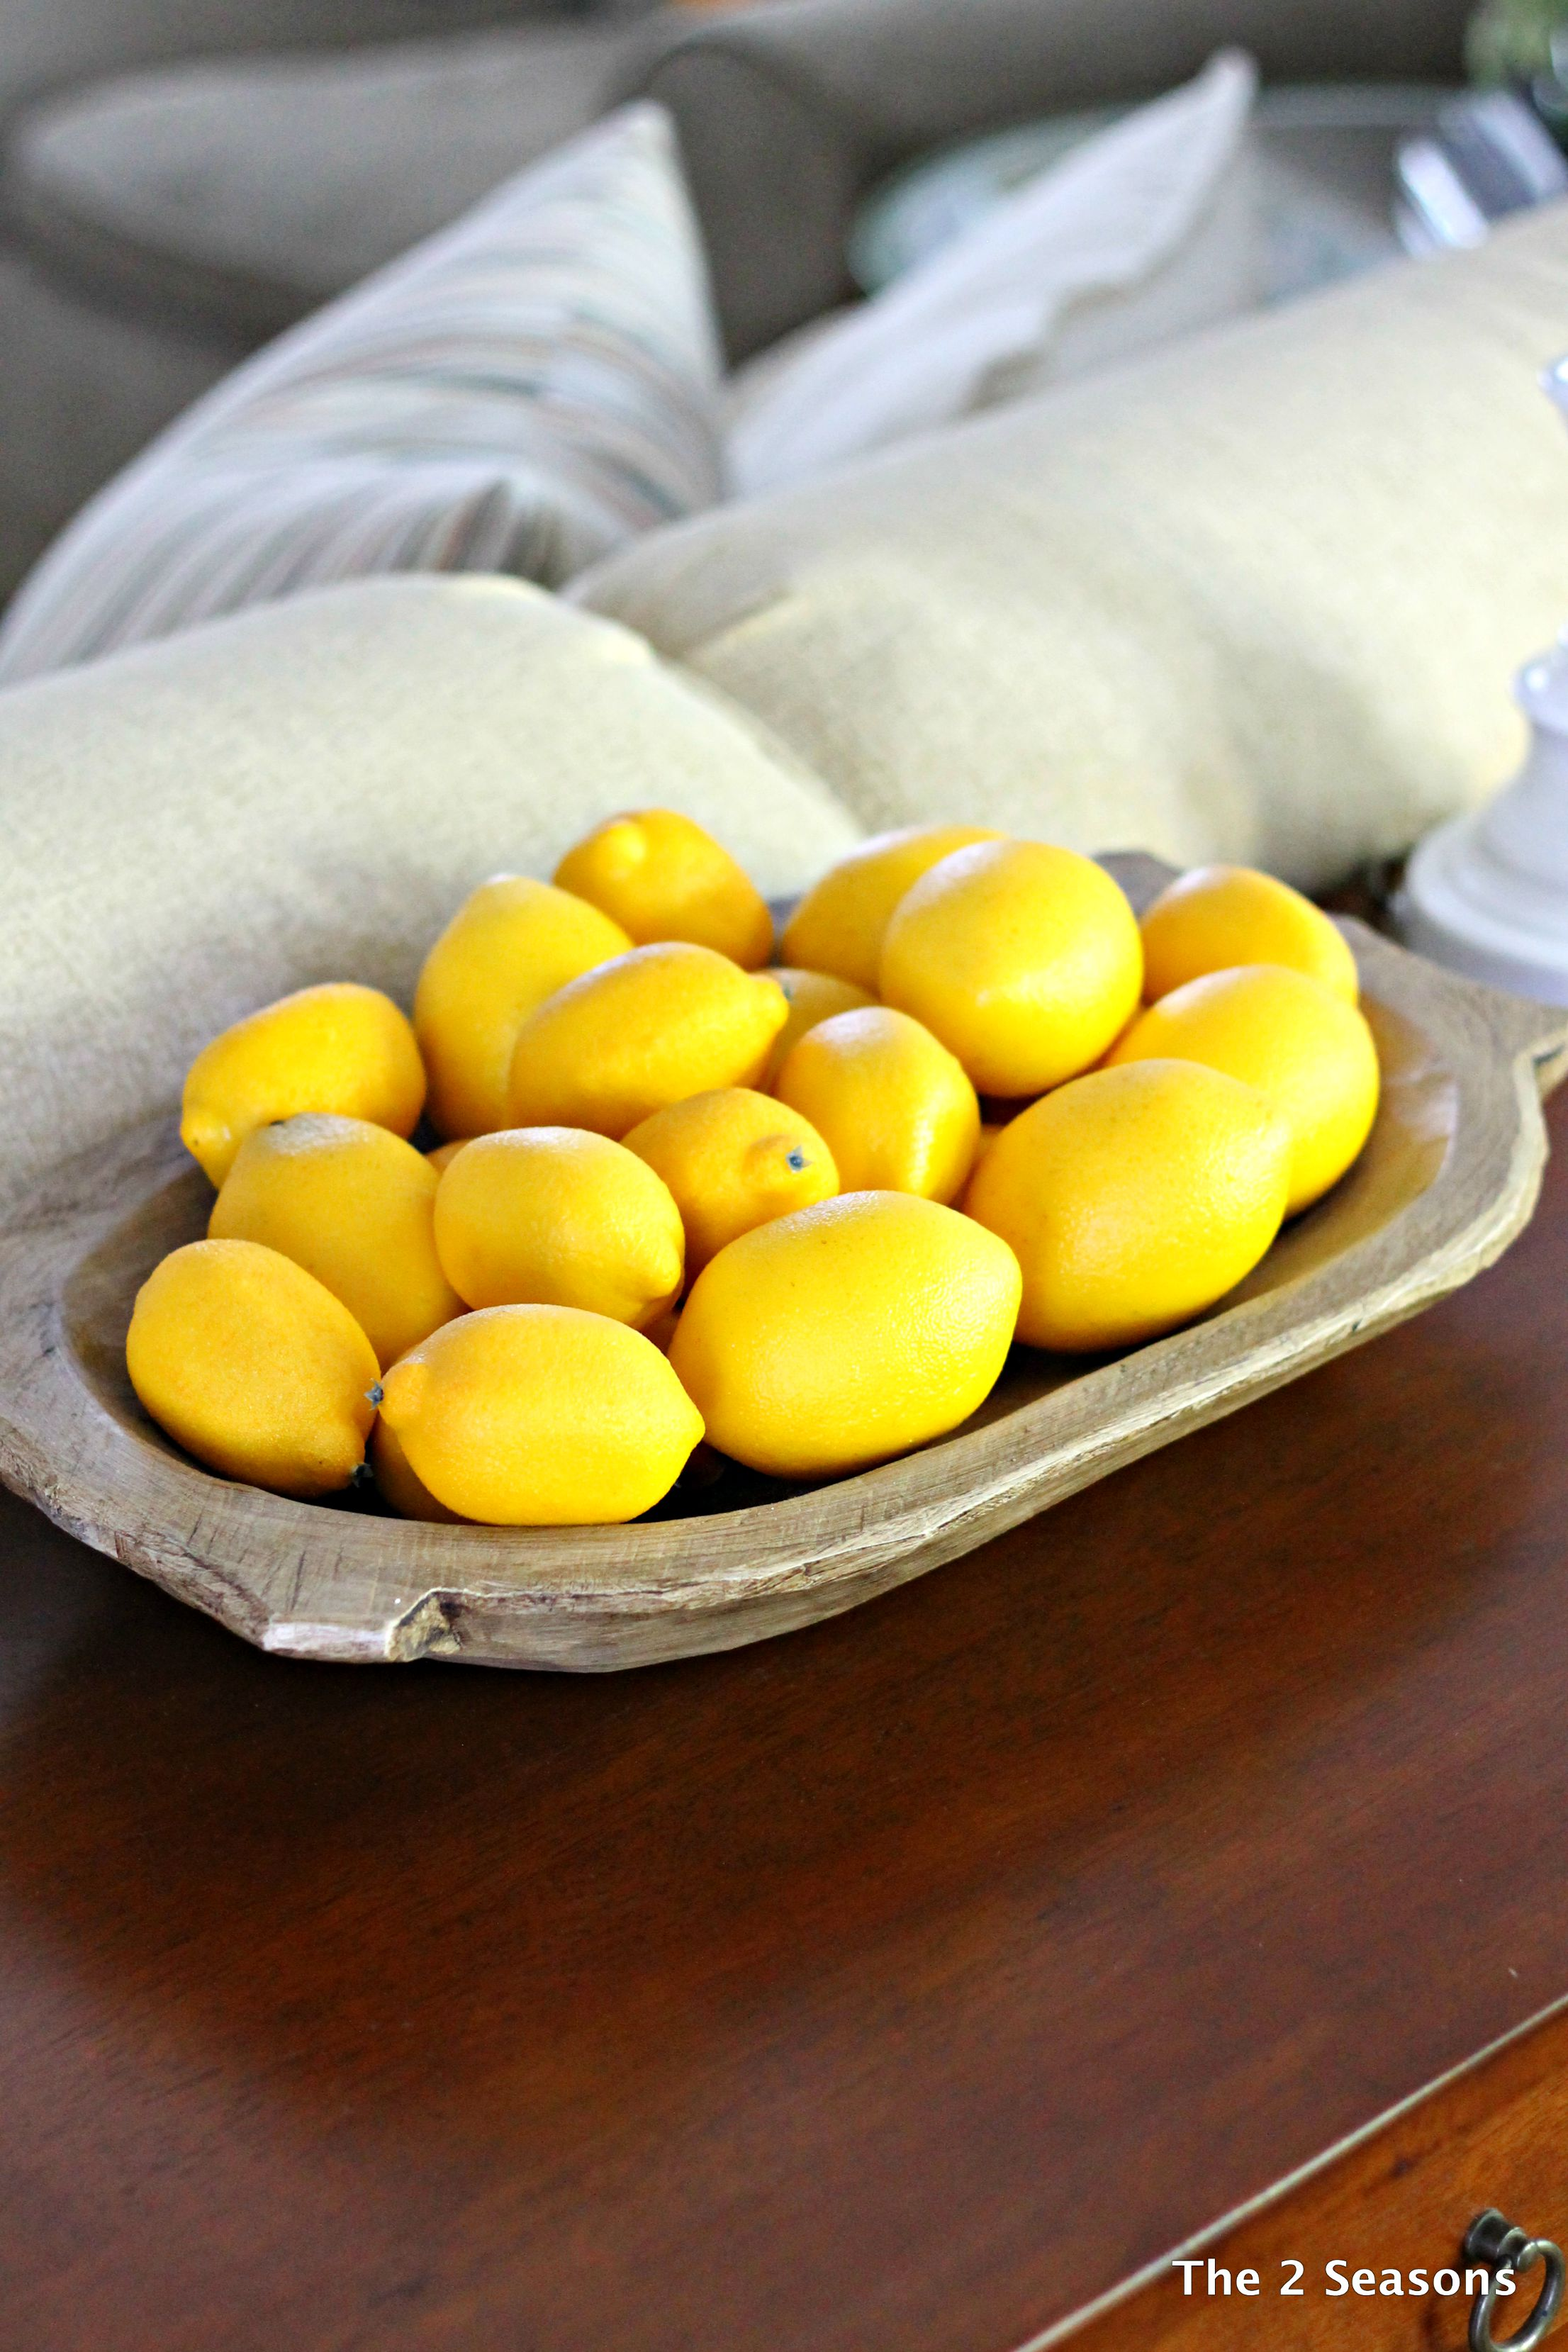 Living room Lemons - Antique Wooden Bowls Today